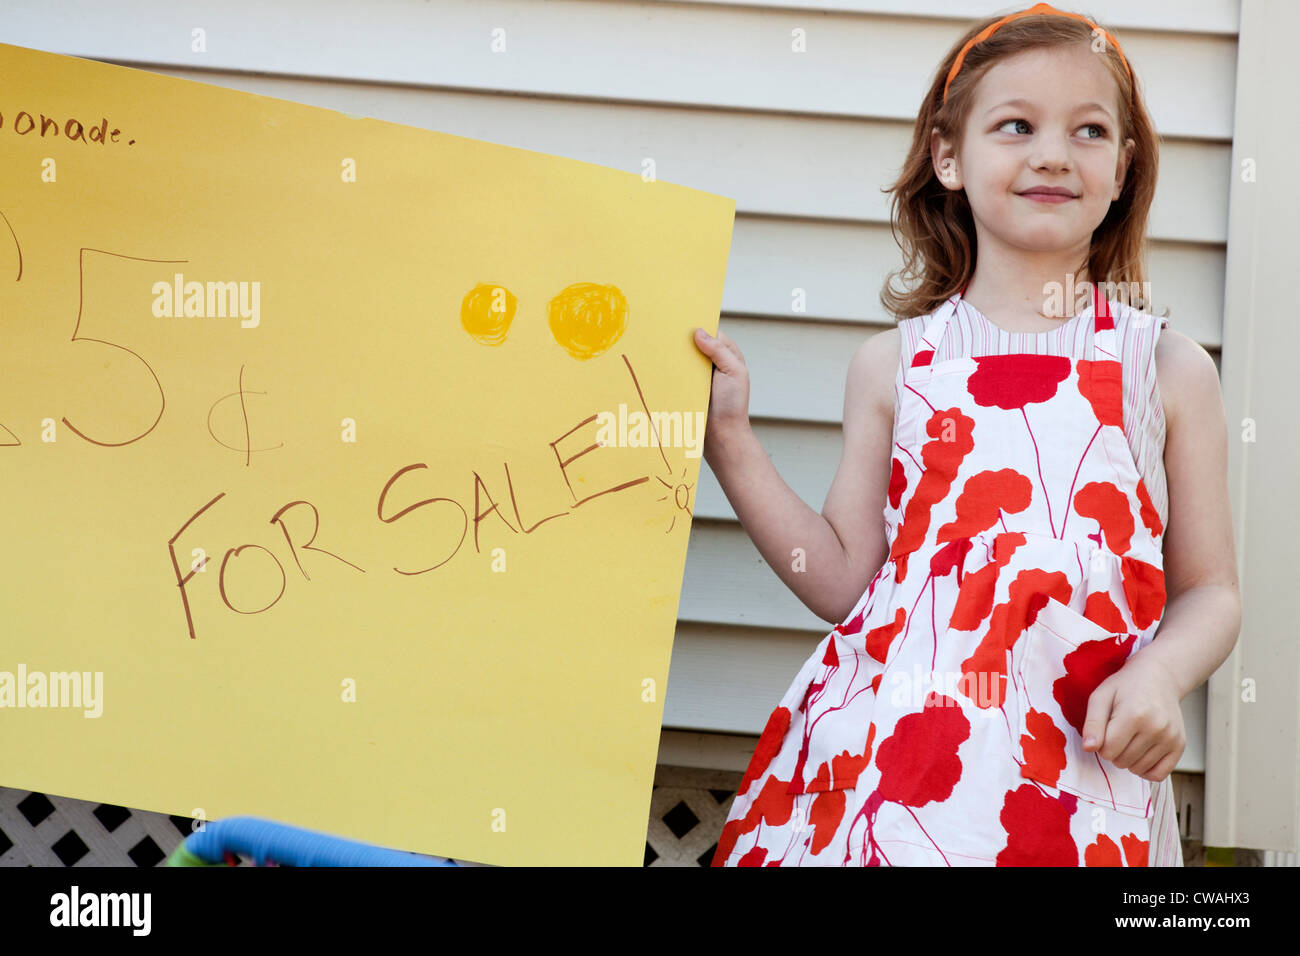 Girl holding homemade lemonade for sale sign - Stock Image